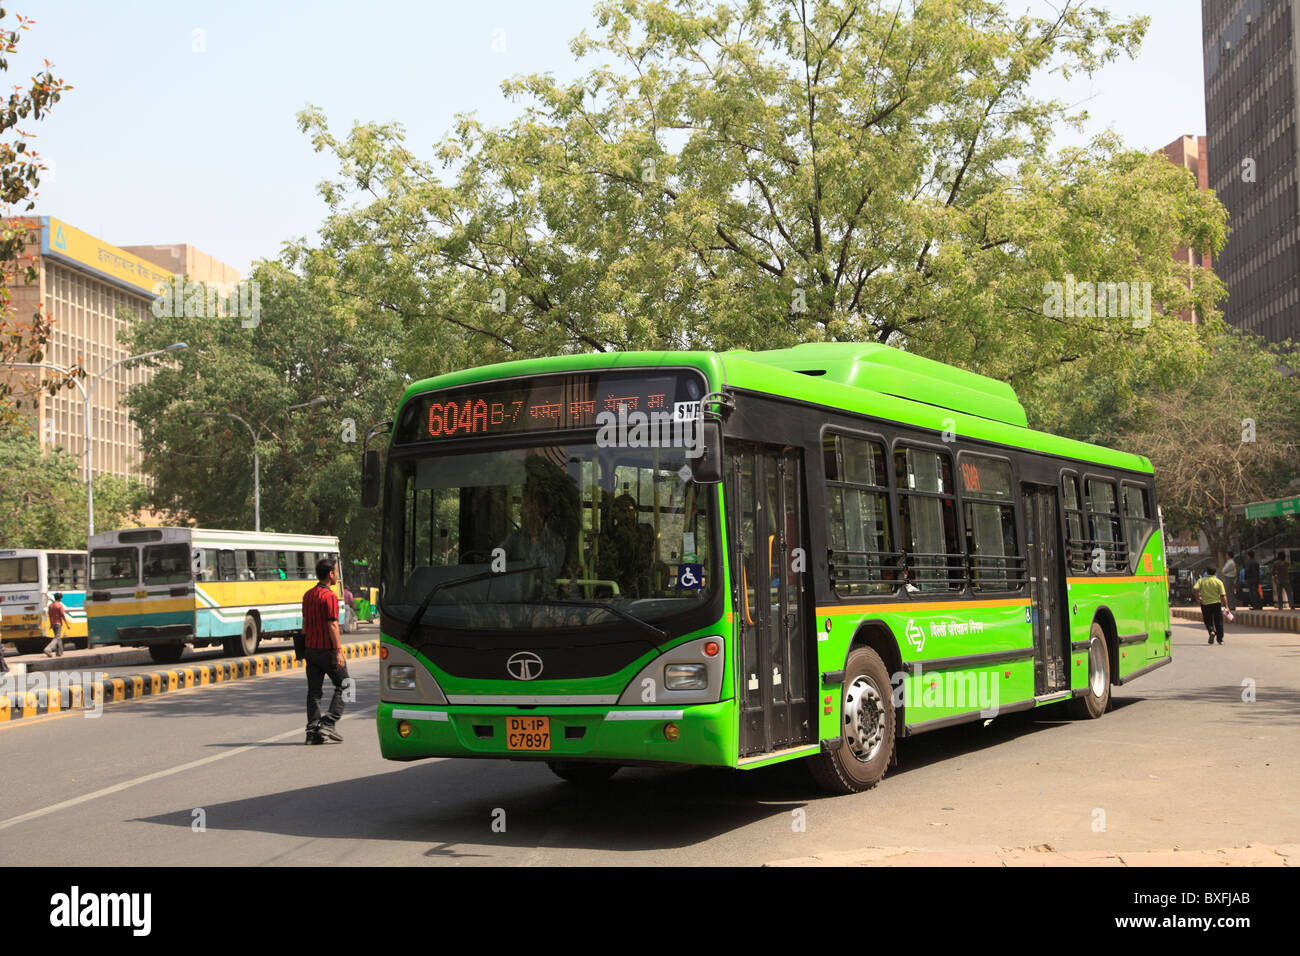 New environmentally friendly public buses in New Delhi India. The low-floor buses run on compressed natural gas - Stock Image